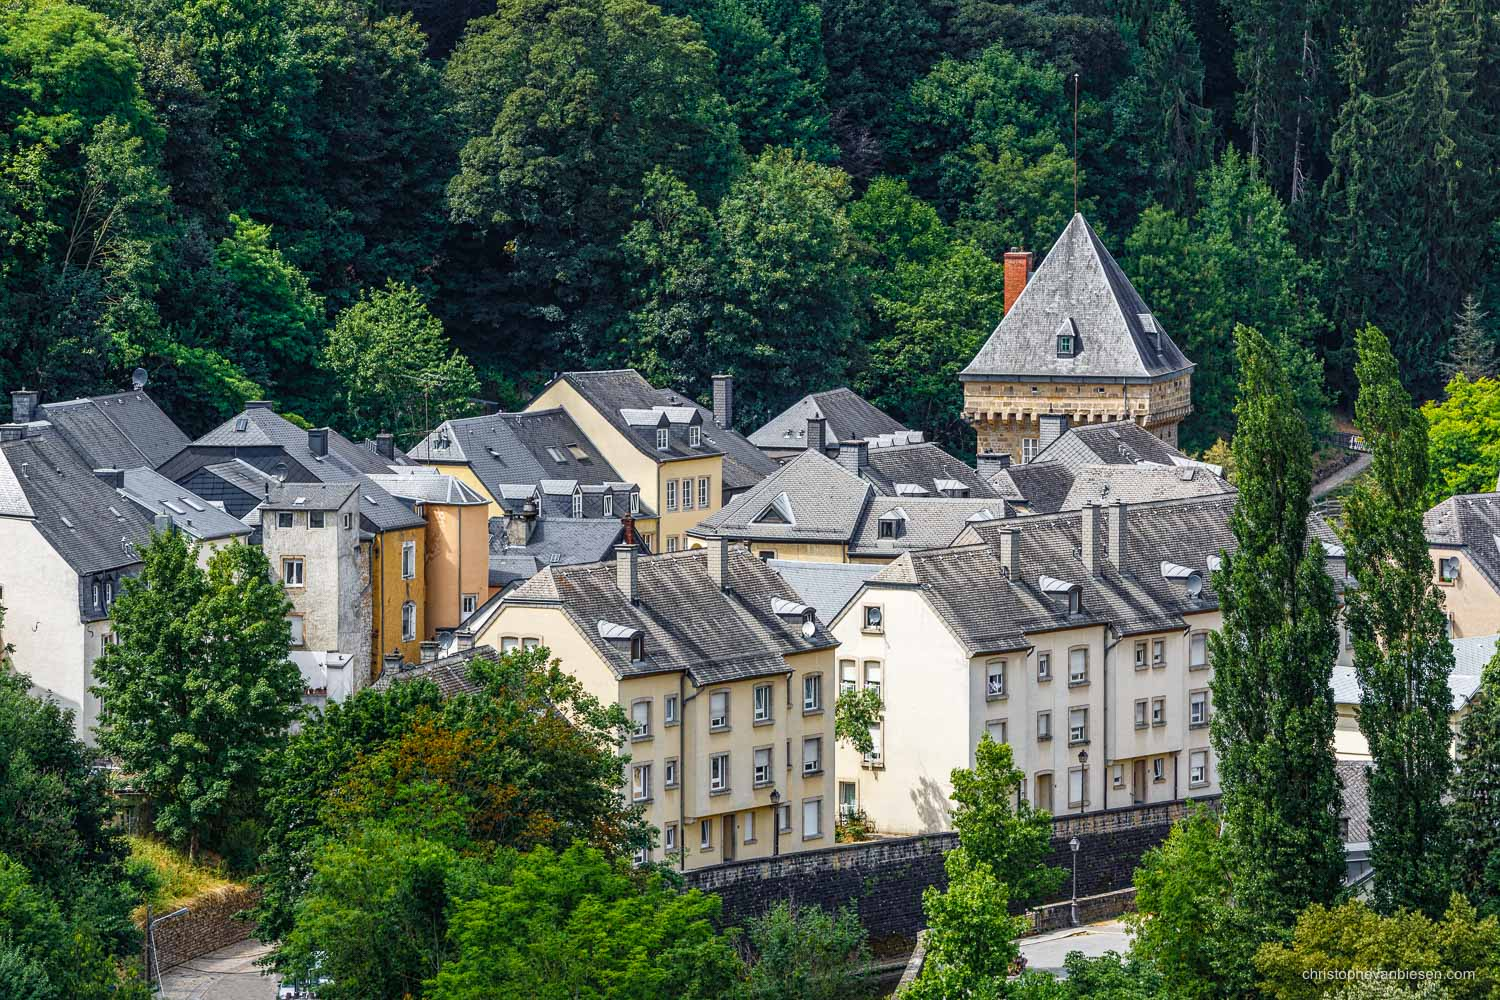 Summer in Luxembourg - One of Luxembourg City's Vauban Towers in Pfaffenthal - The City's Watchtowers III